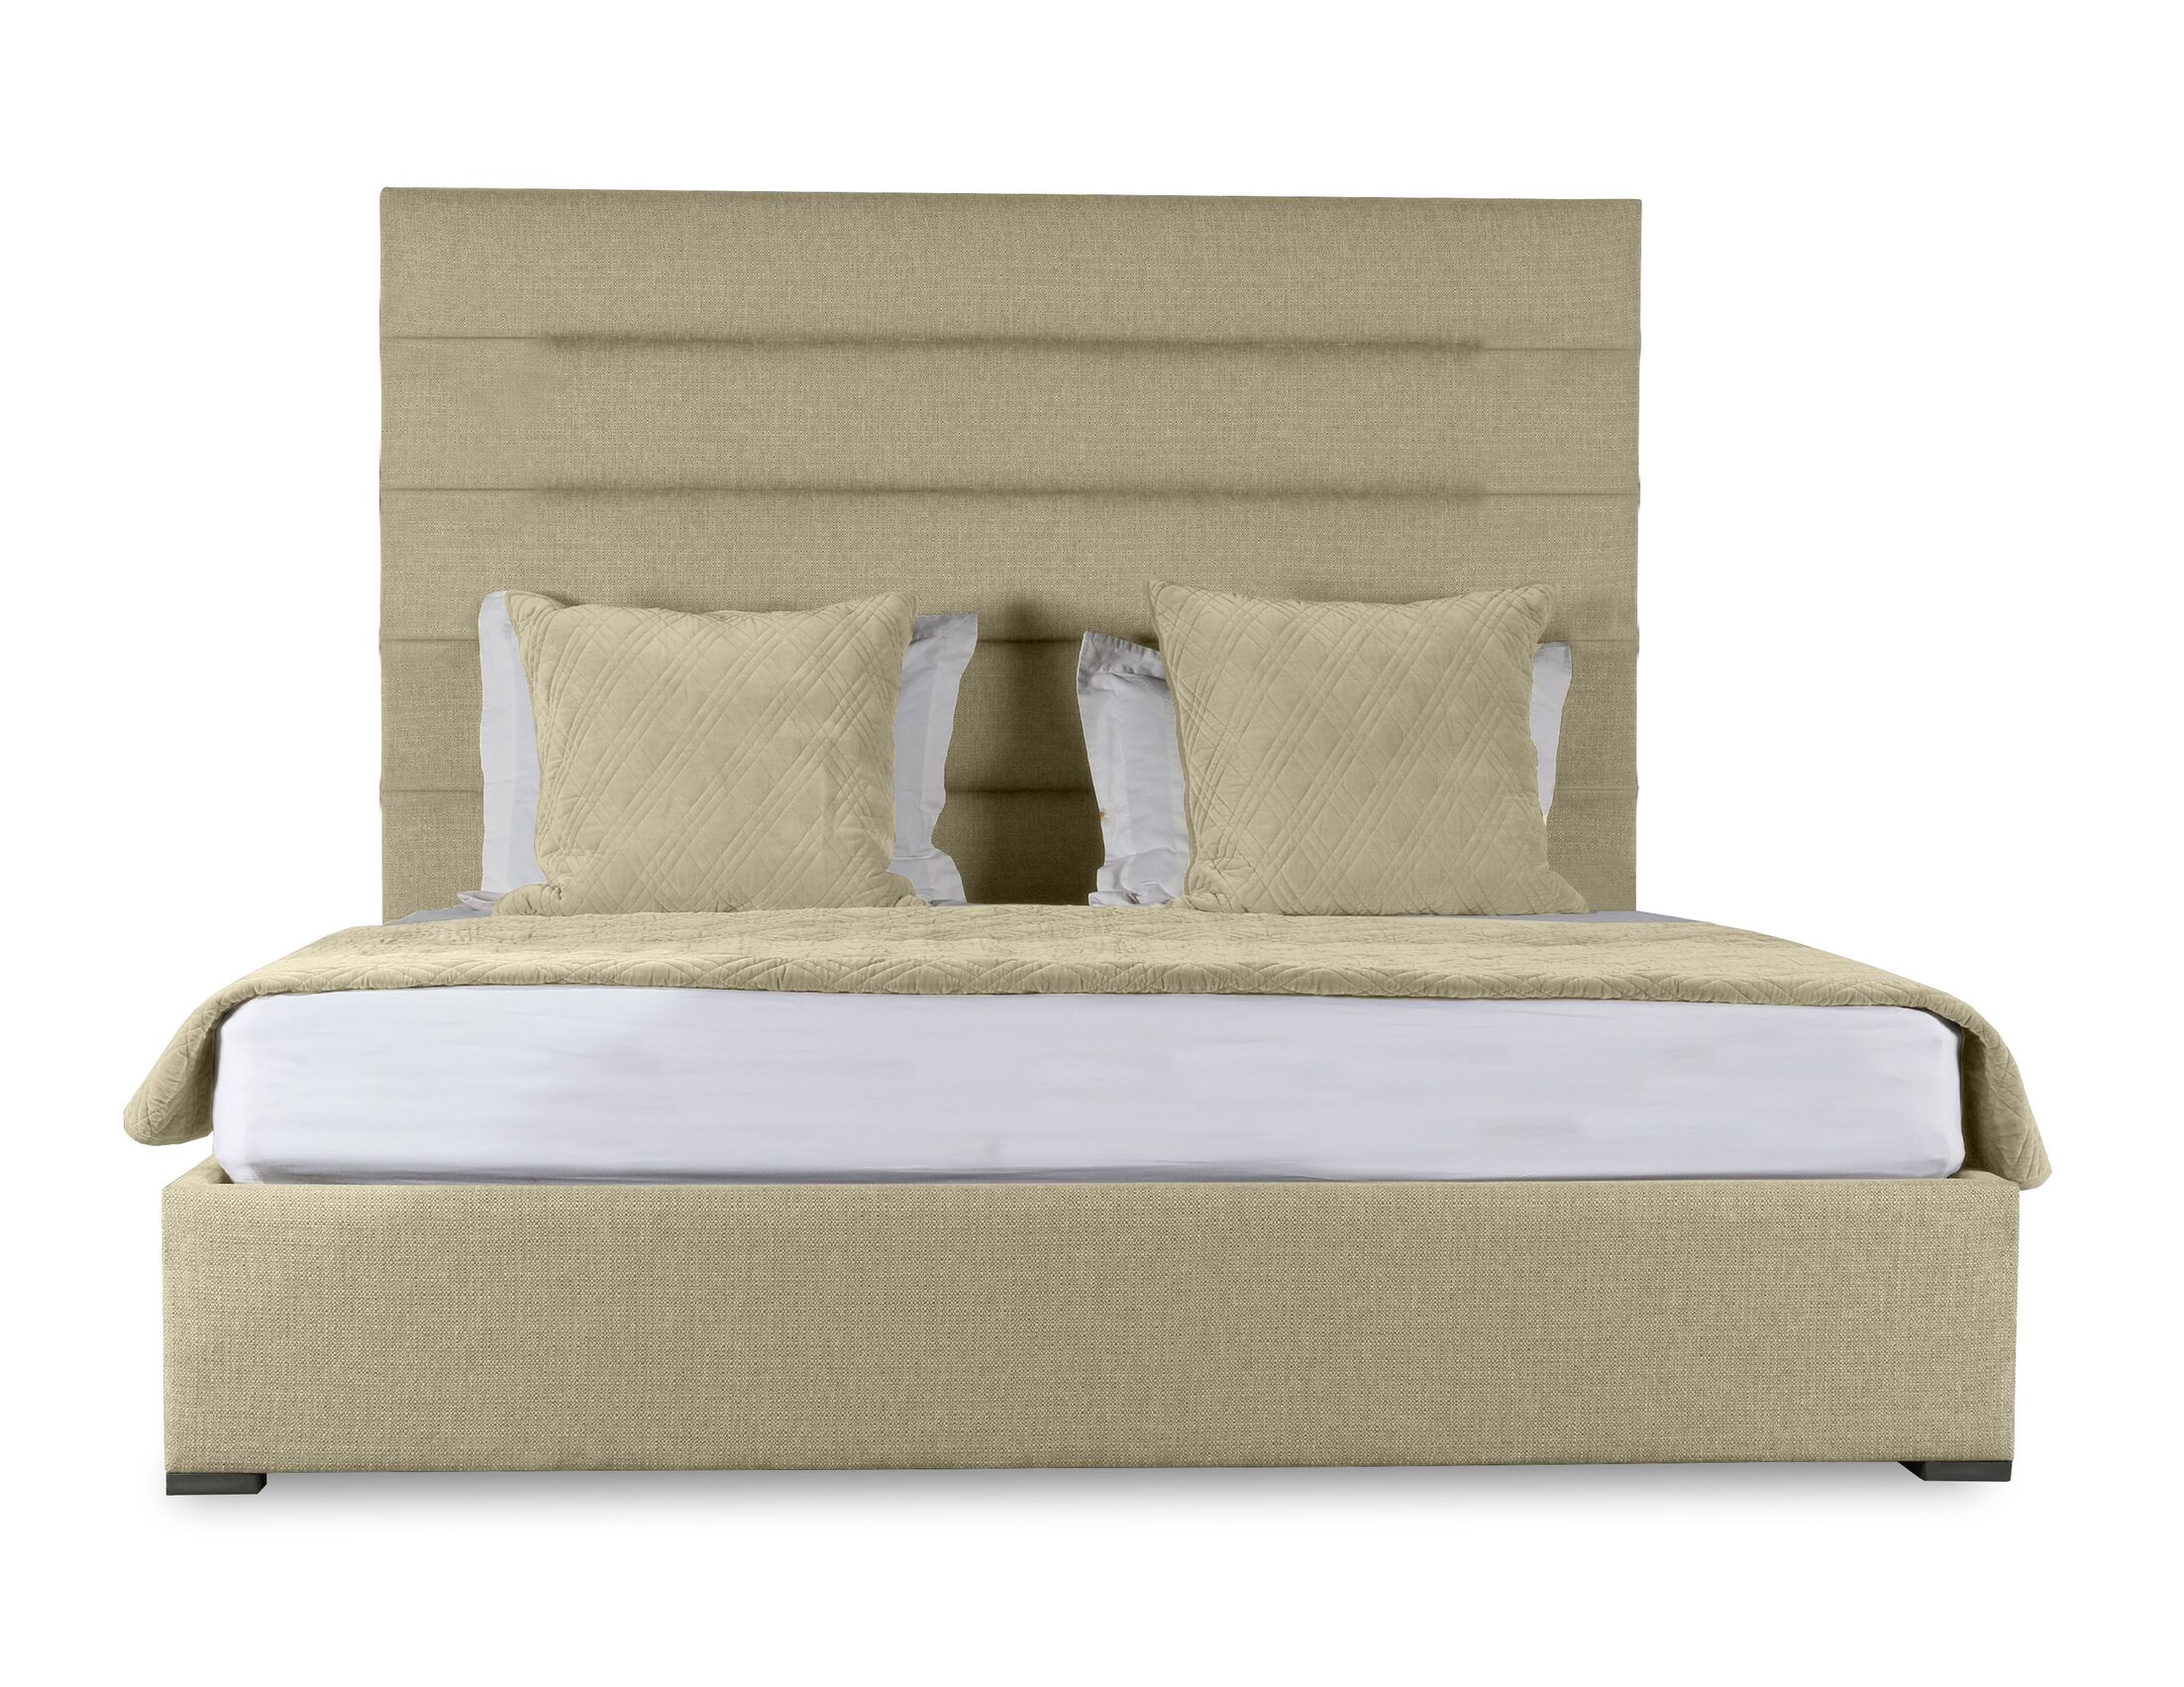 Handley Upholstered Panel Bed Size: High Height King, Color: Sand